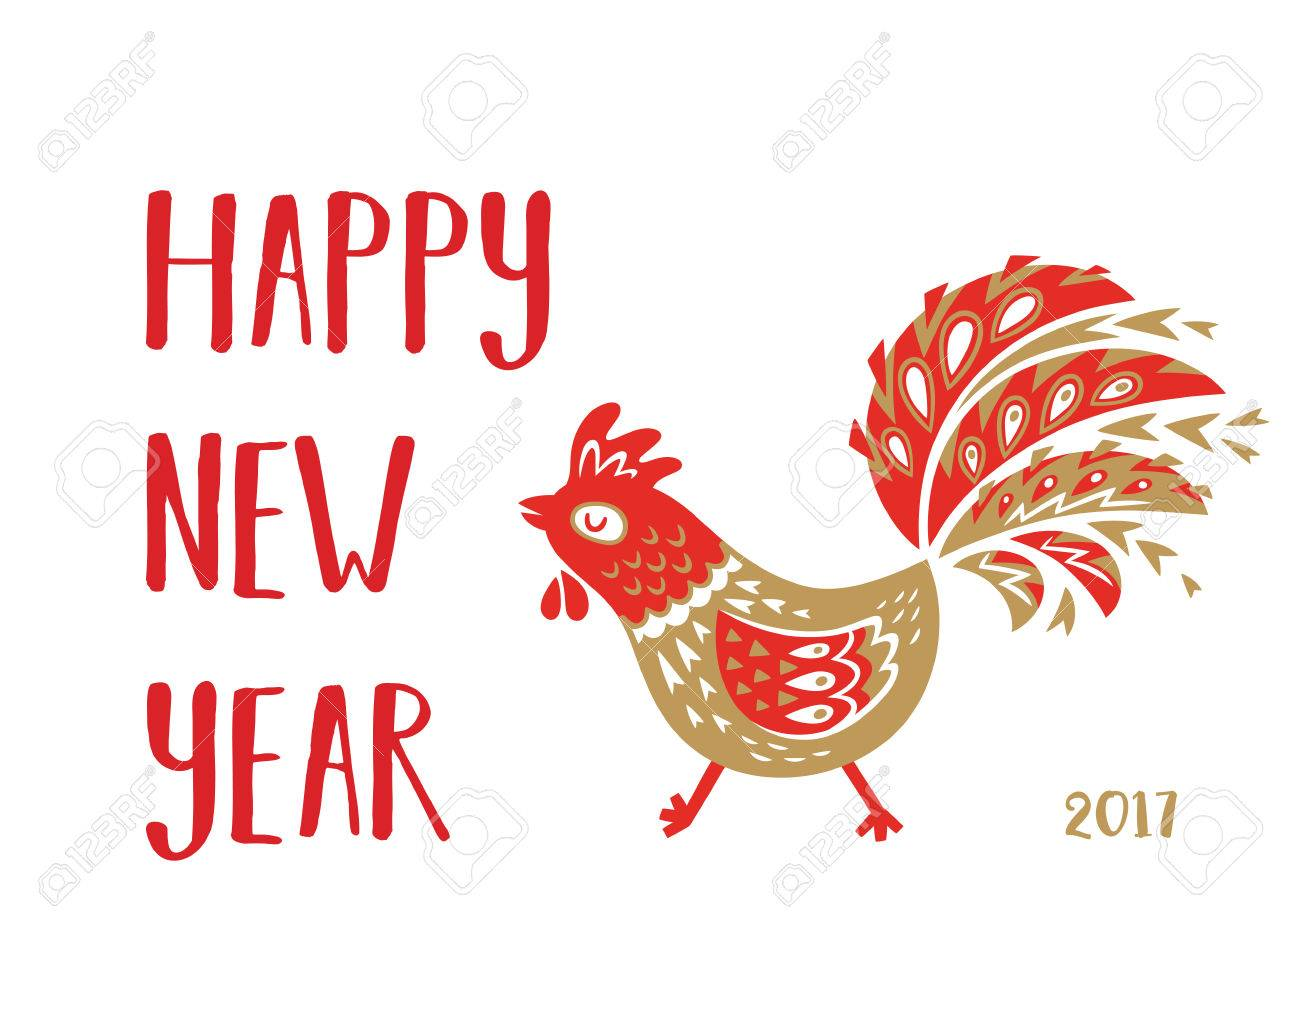 Happy new year chinese zodiac rooster card red and gold ornamental happy new year chinese zodiac rooster card red and gold ornamental rooster zodiac symbol buycottarizona Images